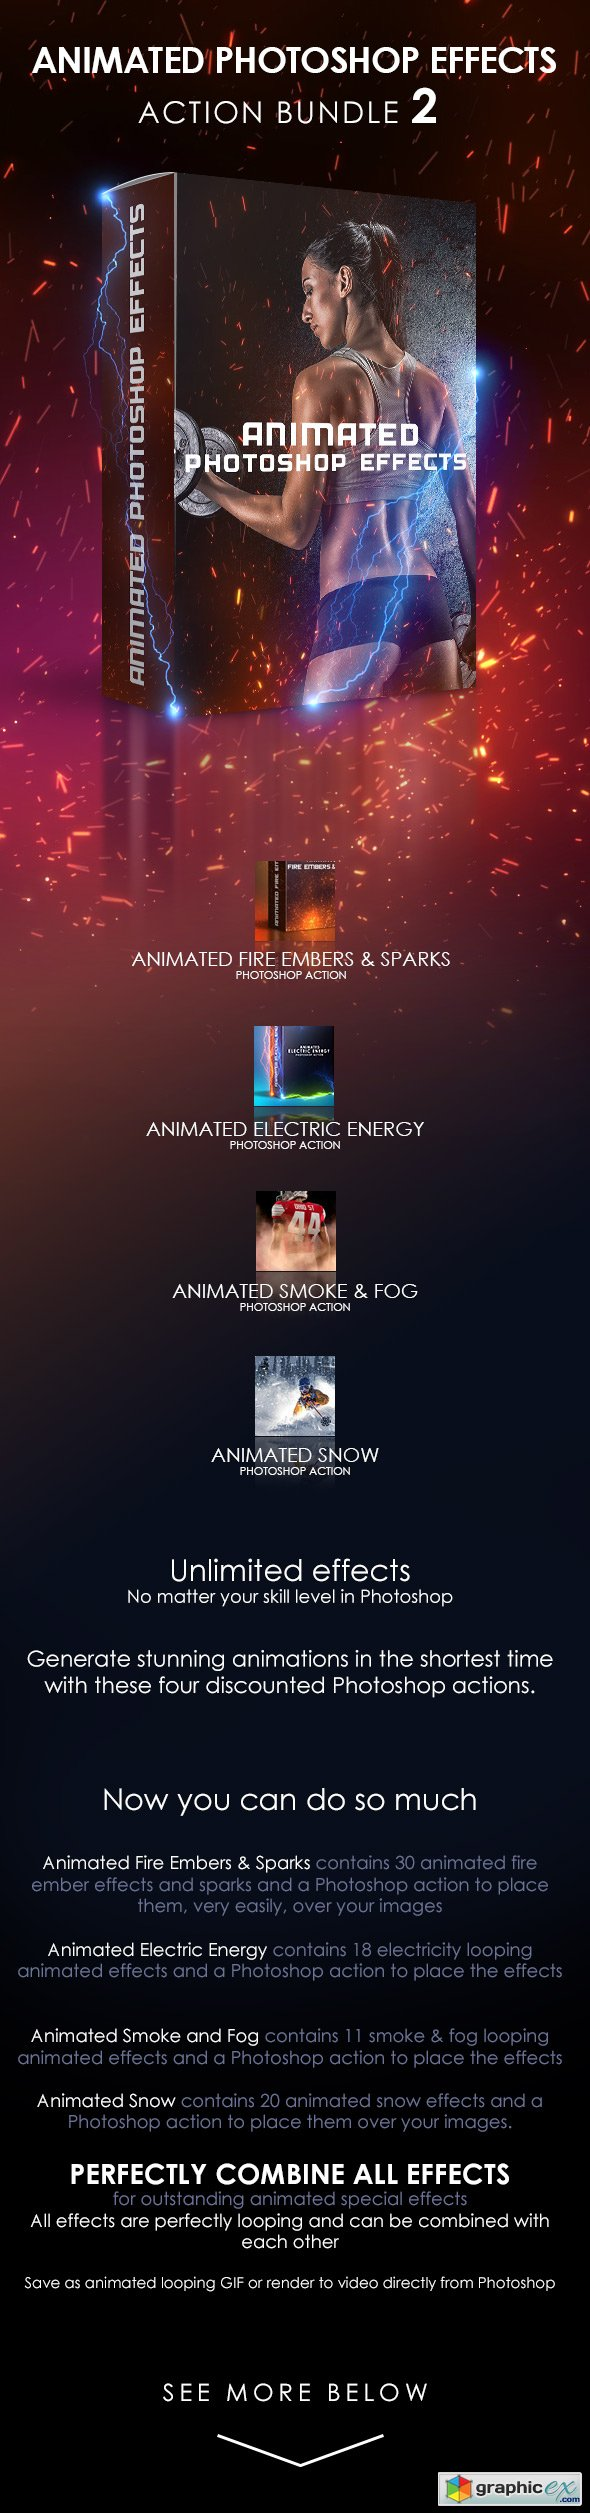 Graphicriver Animated Photoshop Effects Action Bundle 2